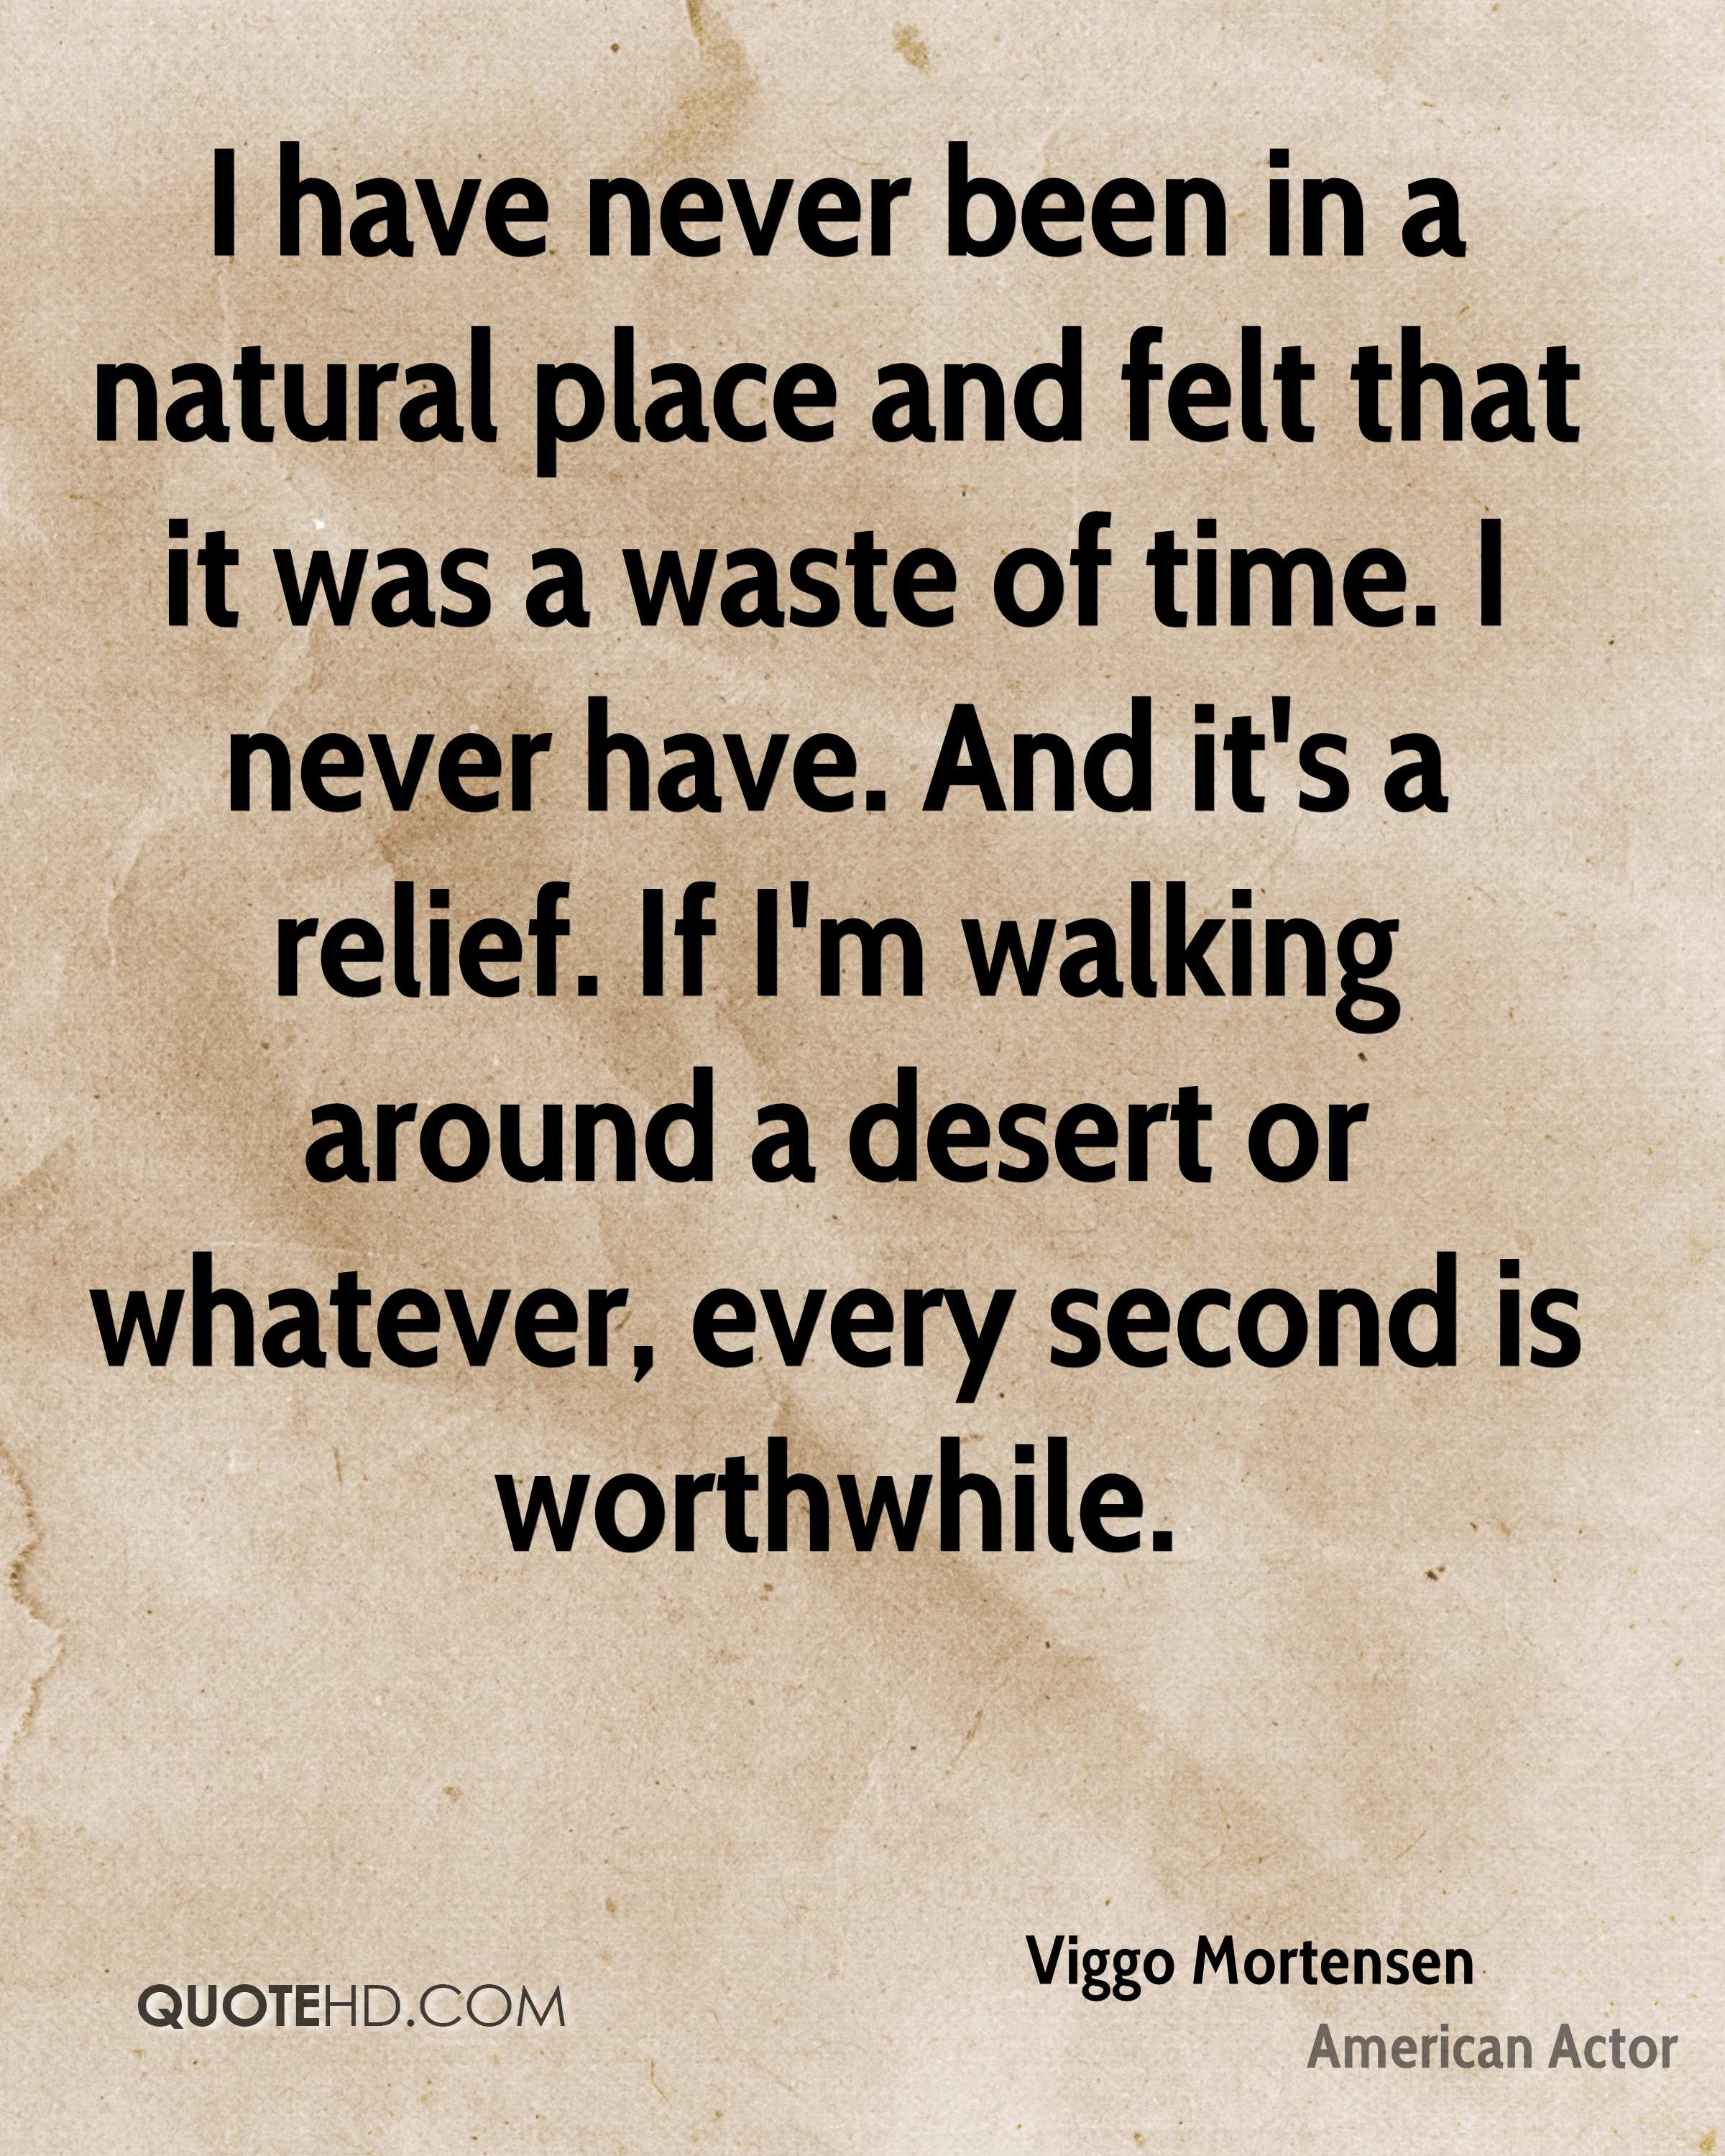 I have never been in a natural place and felt that it was a waste of time. I never have. And it's a relief. If I'm walking around a desert or whatever, every second is worthwhile.